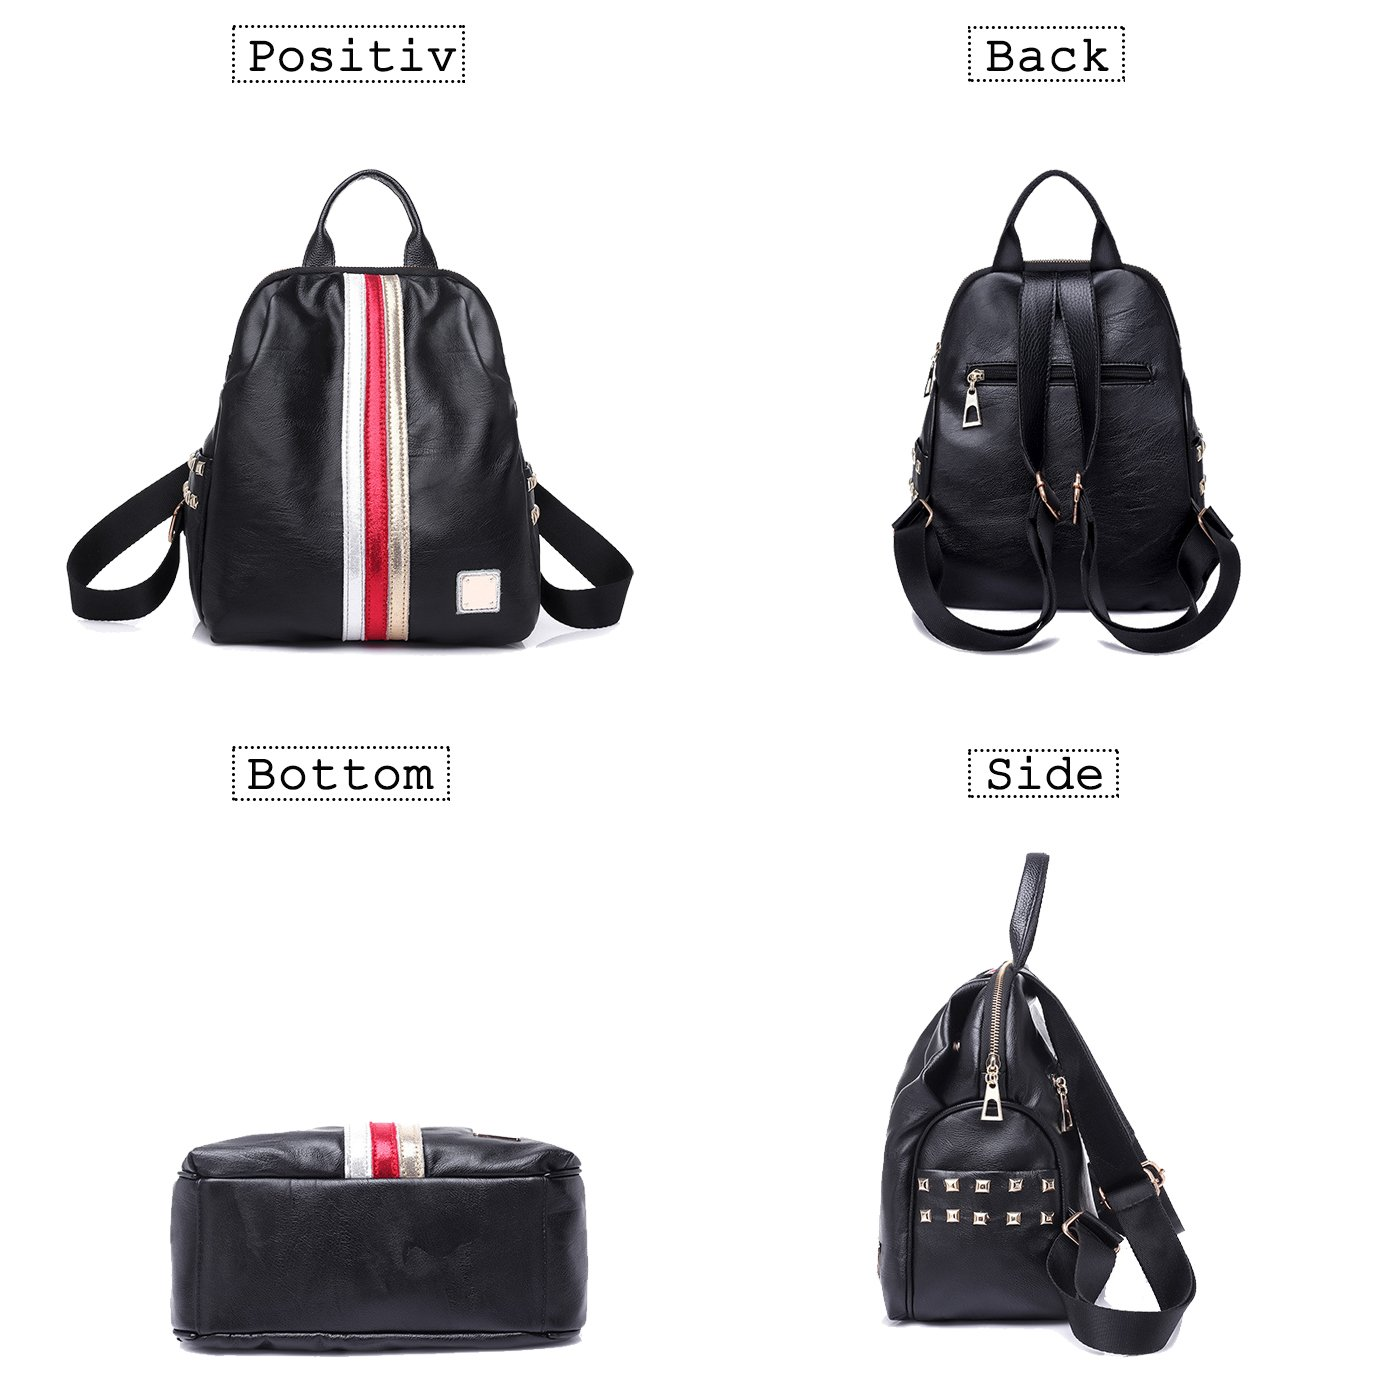 944073de425c Amazon.com: Coolives Girls Leather Black Small Travel Backpack Best ...